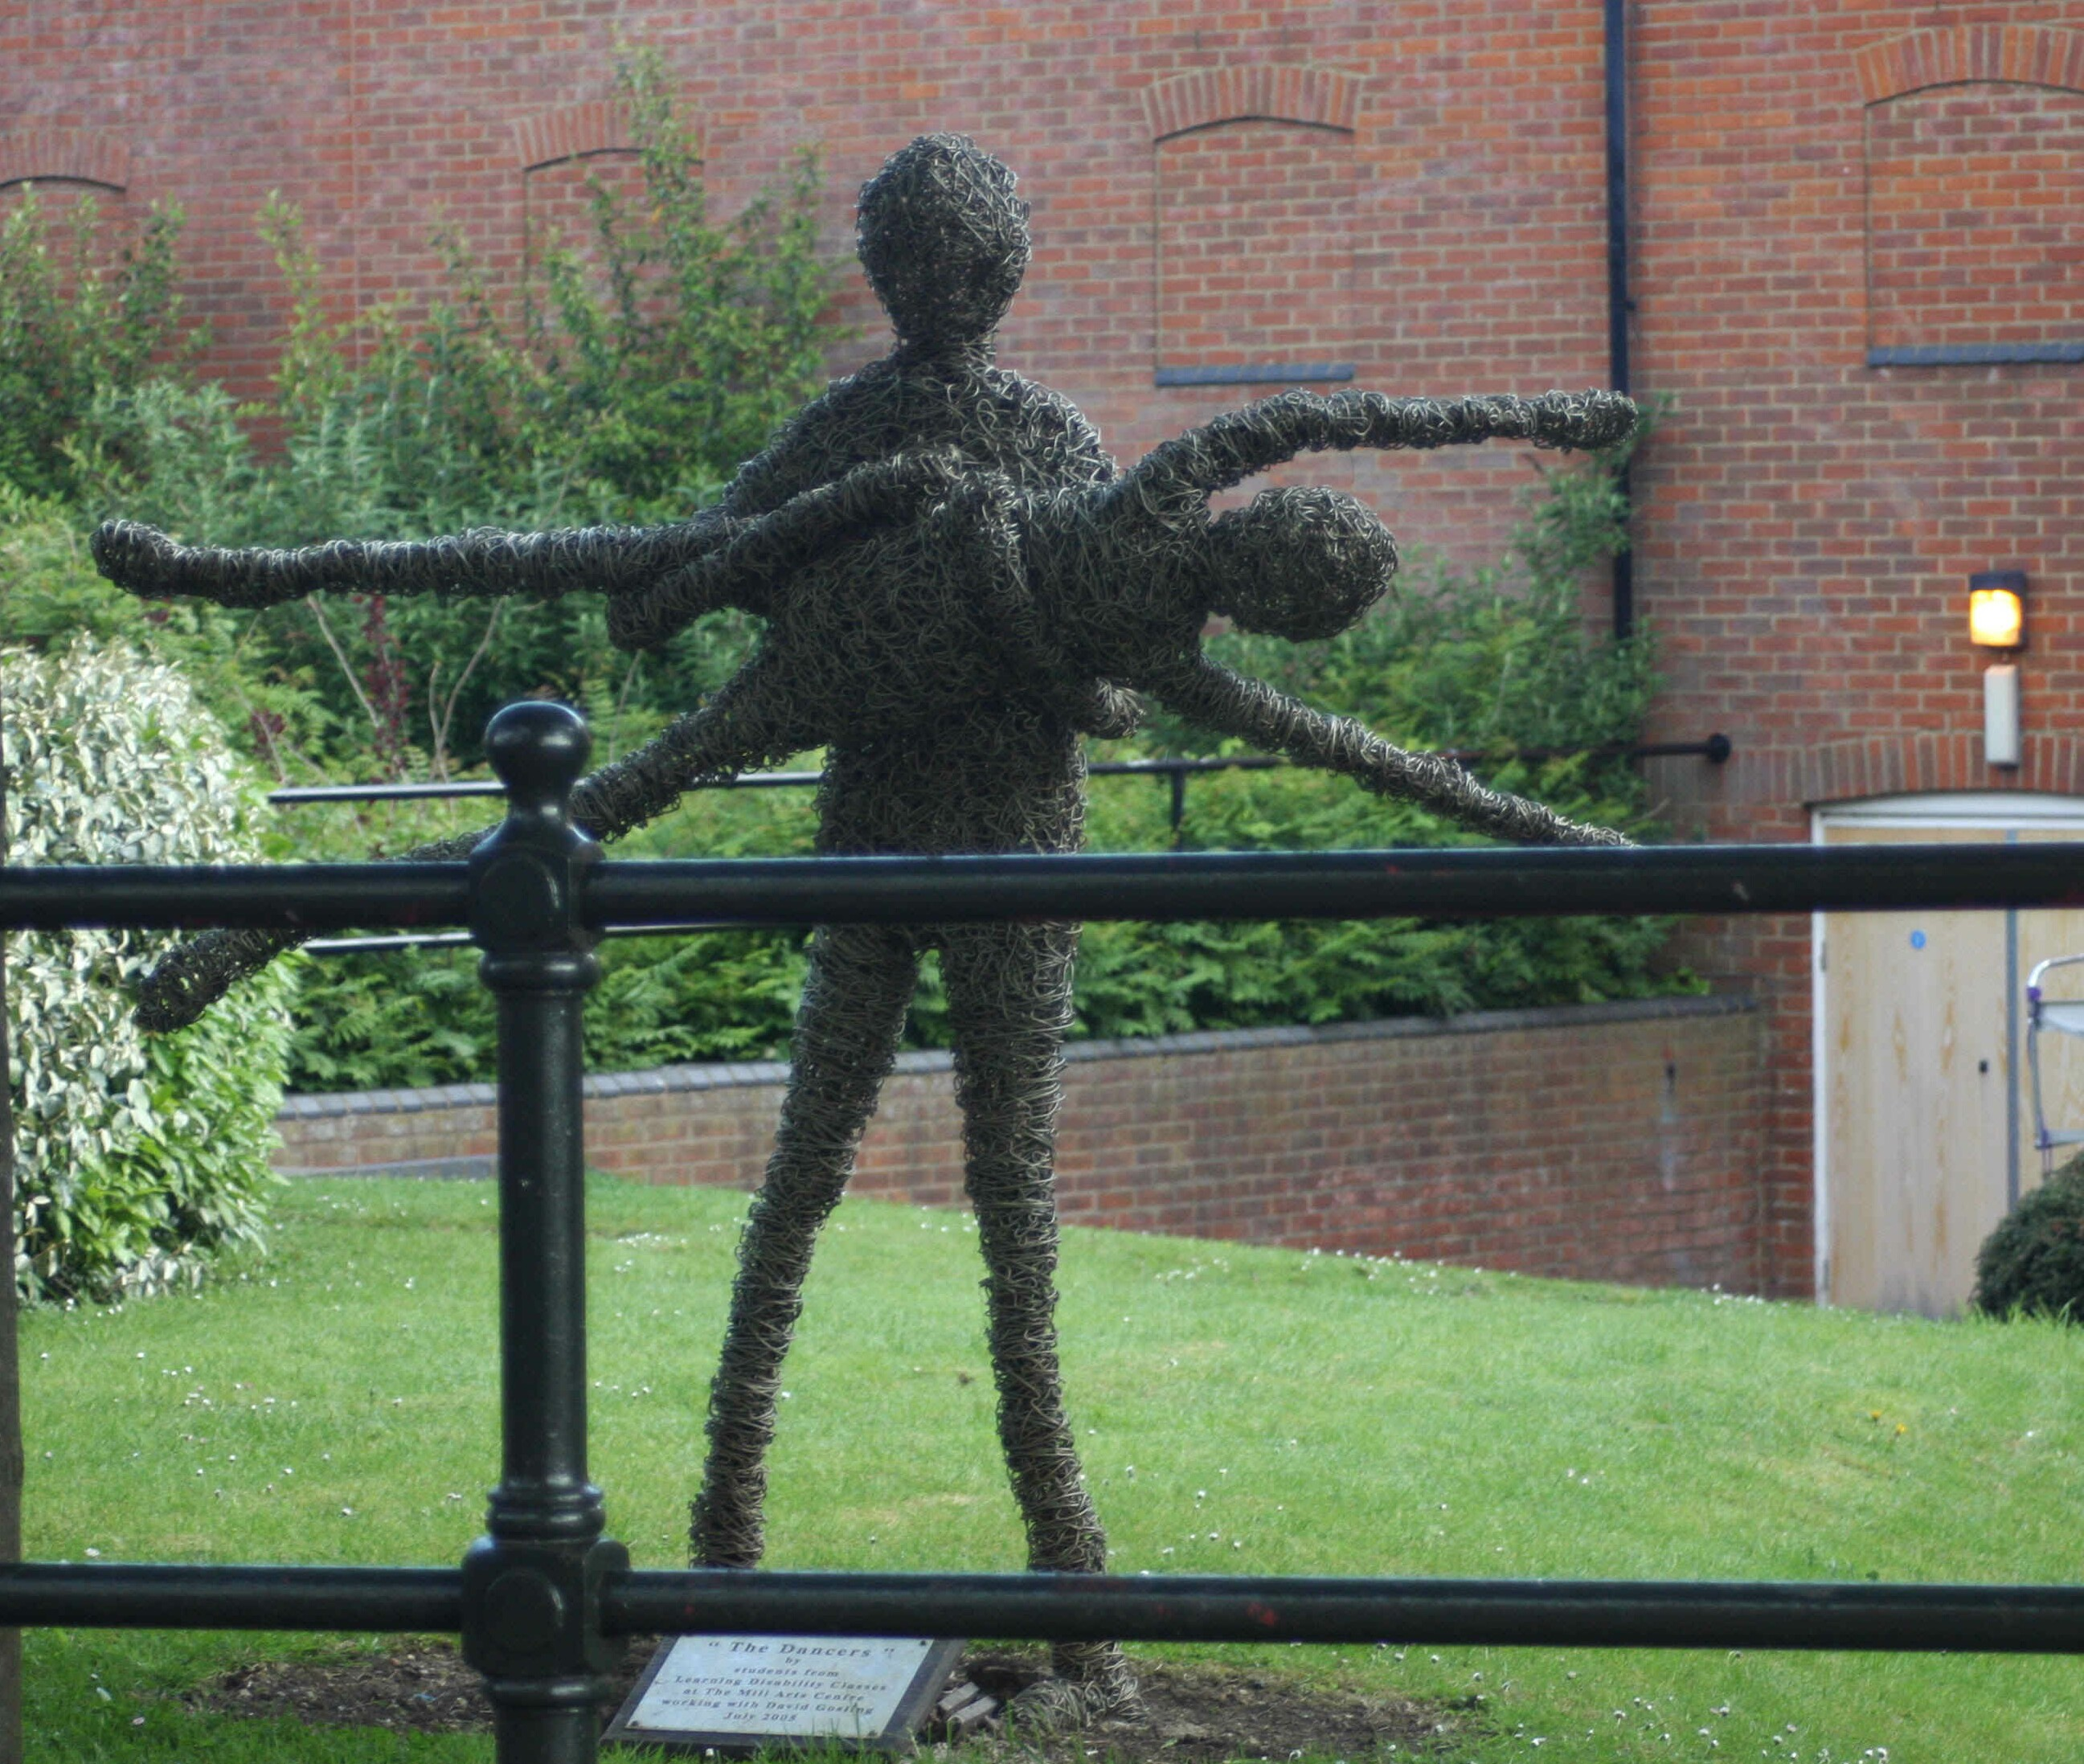 The dancers - one of many wicker sculptures dotted around Banbury